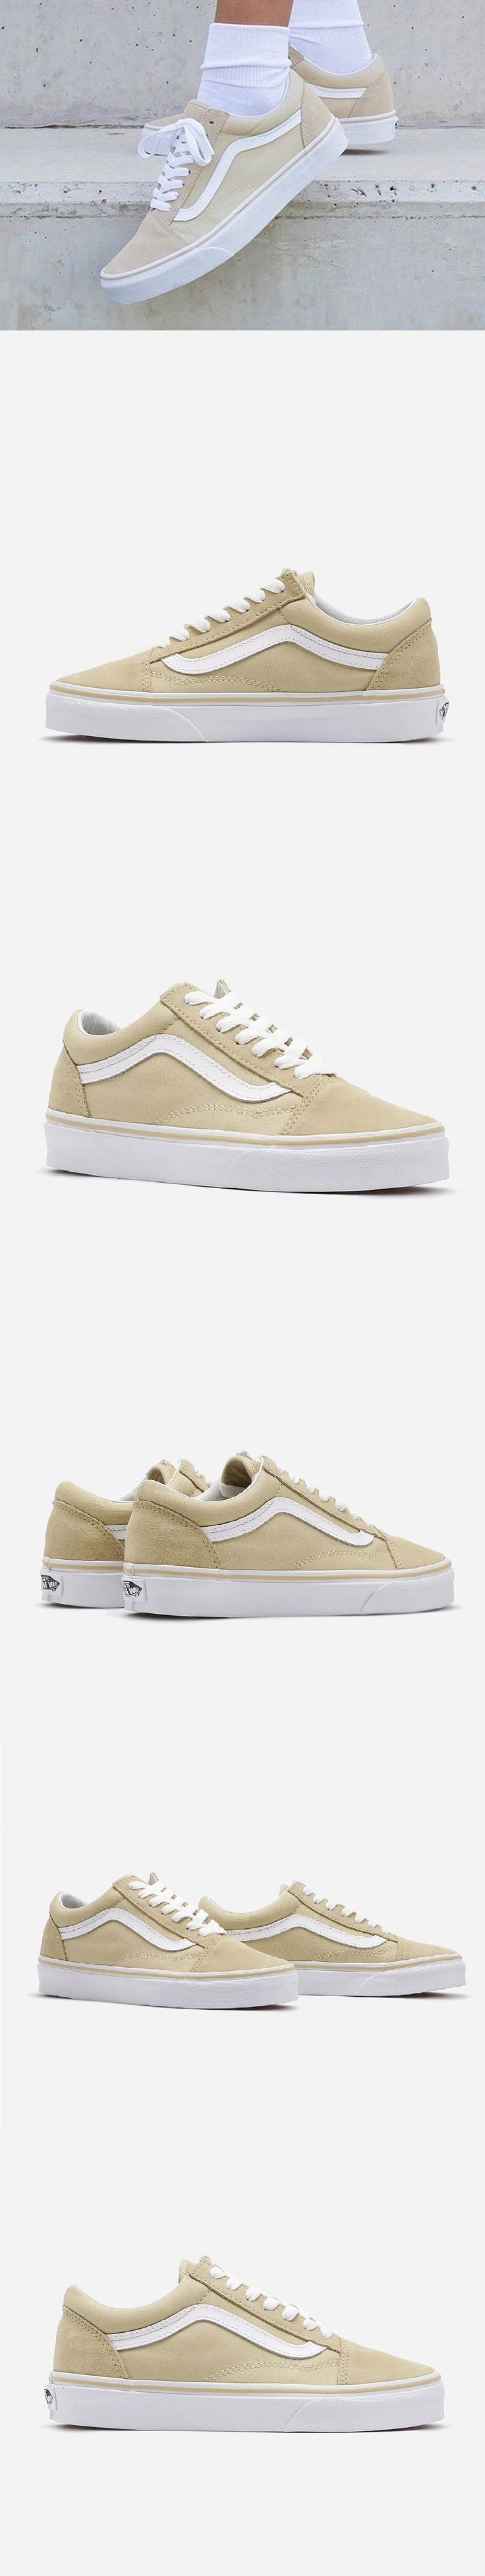 #VANS #OLD #SKOOL #PALE #KHAKI